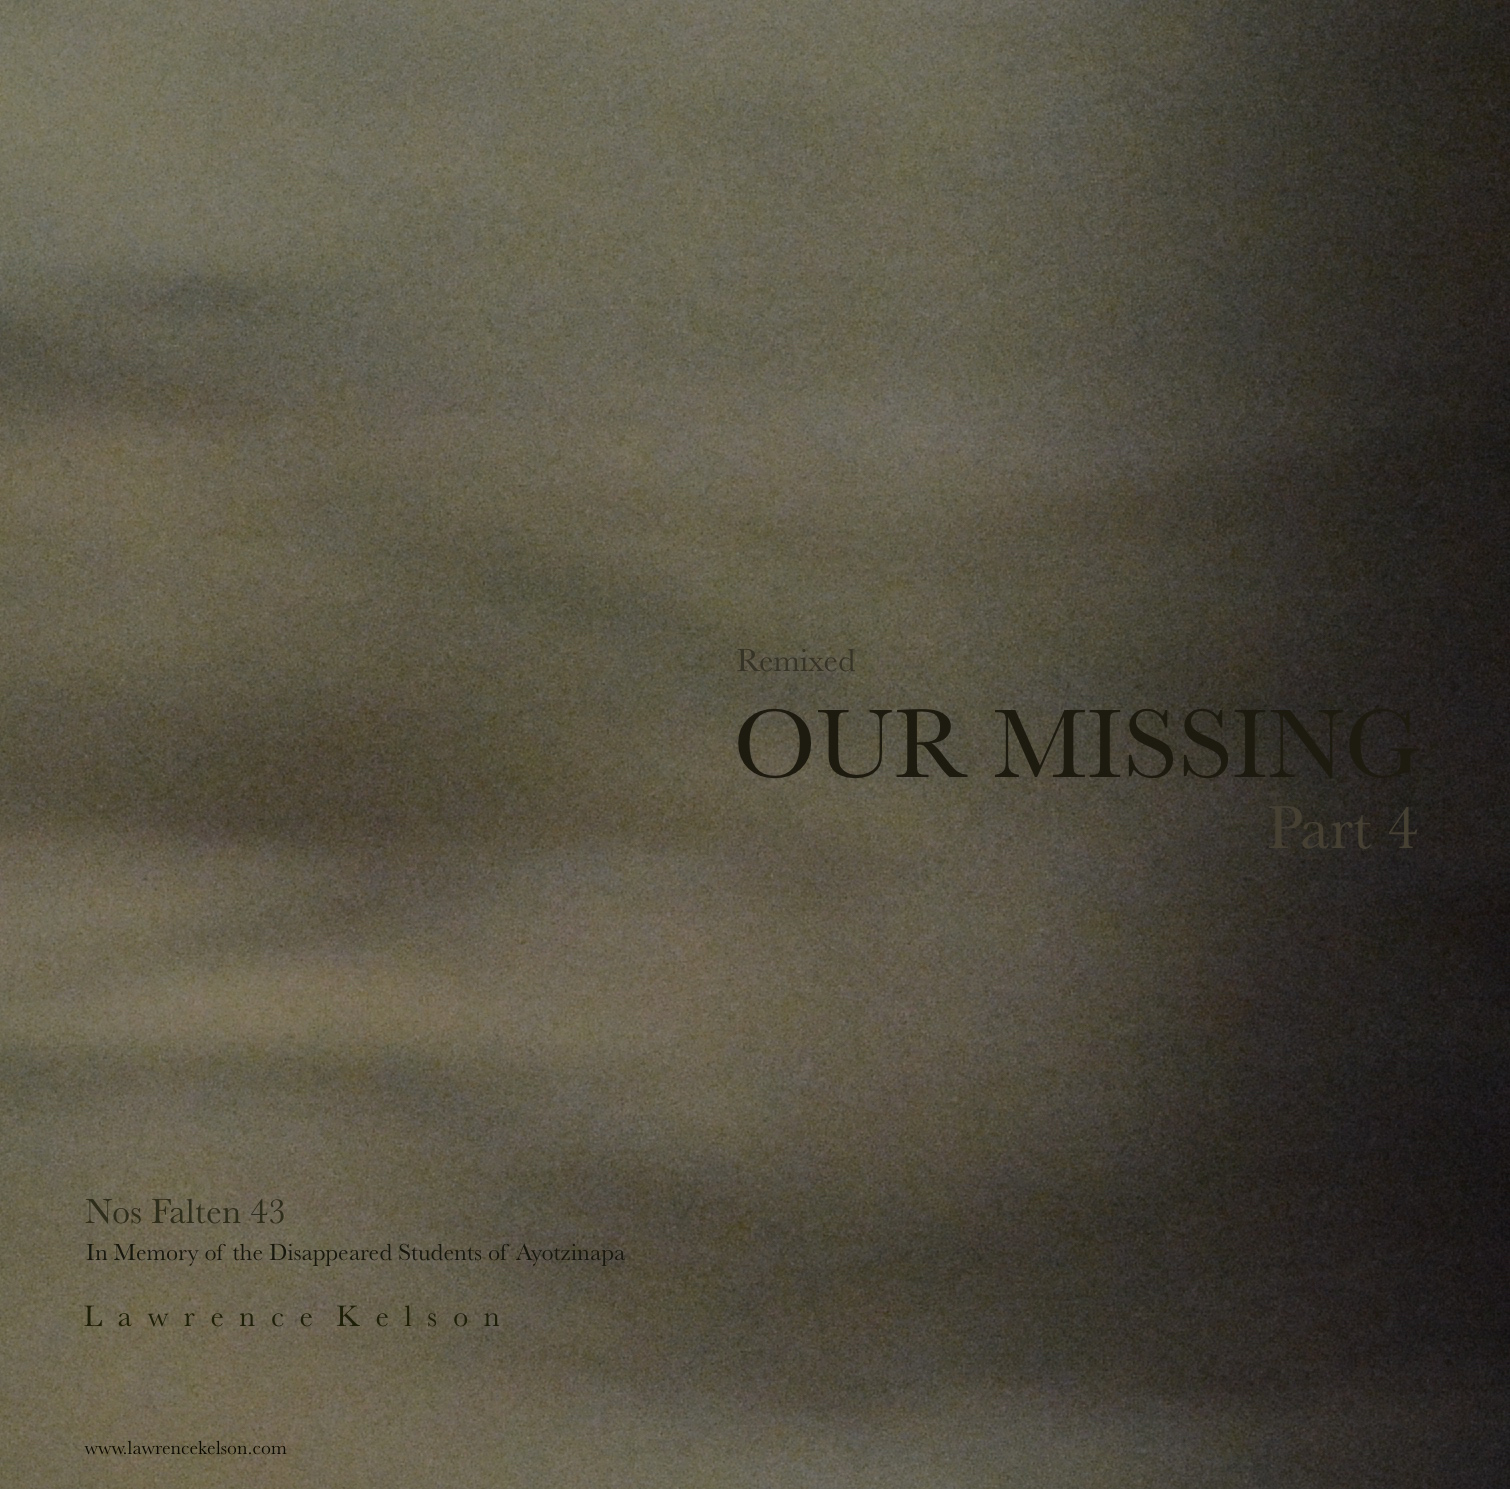 MP3 - Our Missing Part 4 remix